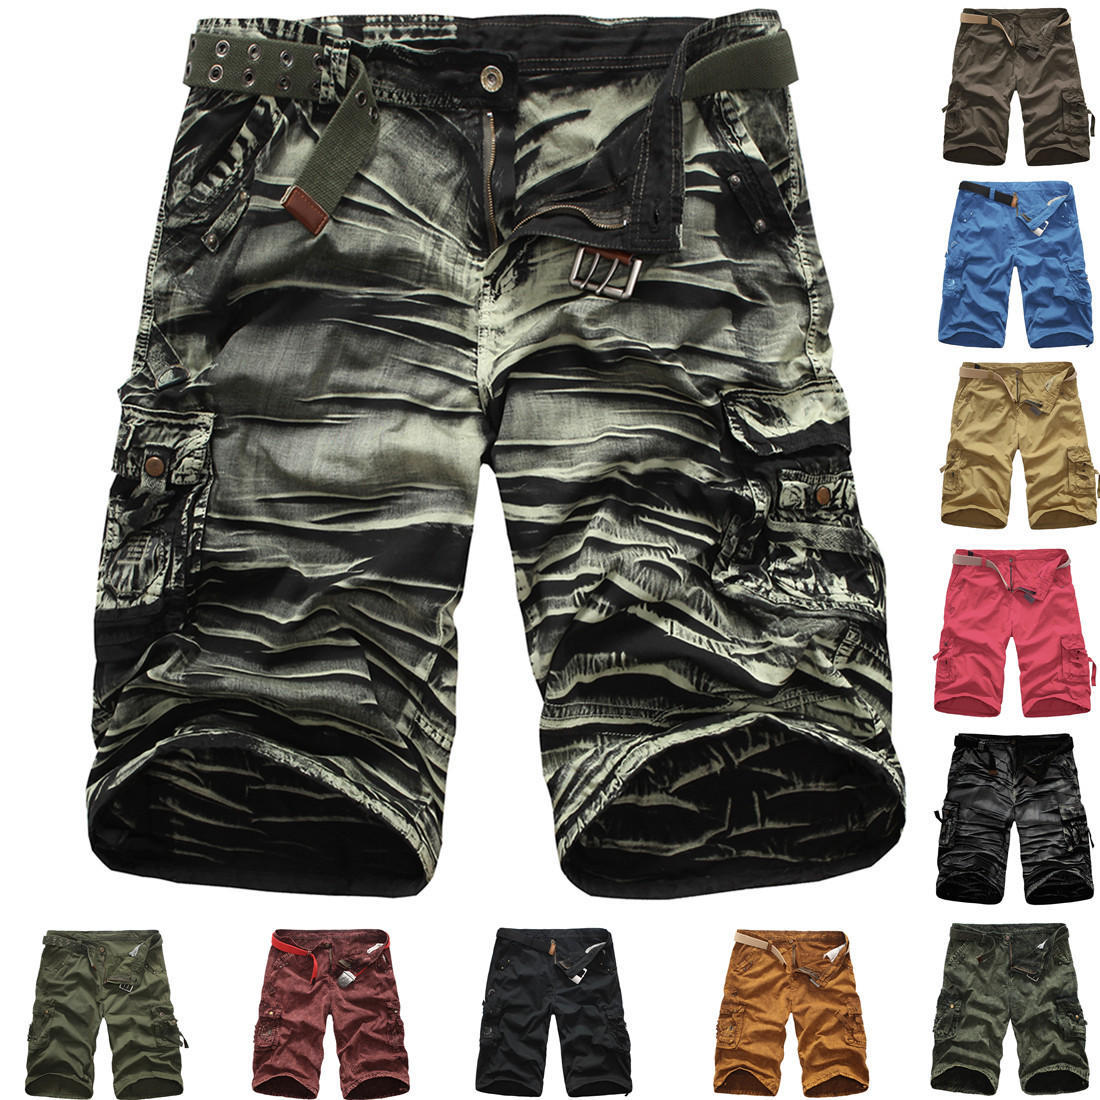 2019 MEN'S Wear Bib Overall Summer Hot Selling Camouflage Middle Pants Europe And America Large Size Loose-Fit Shorts G420